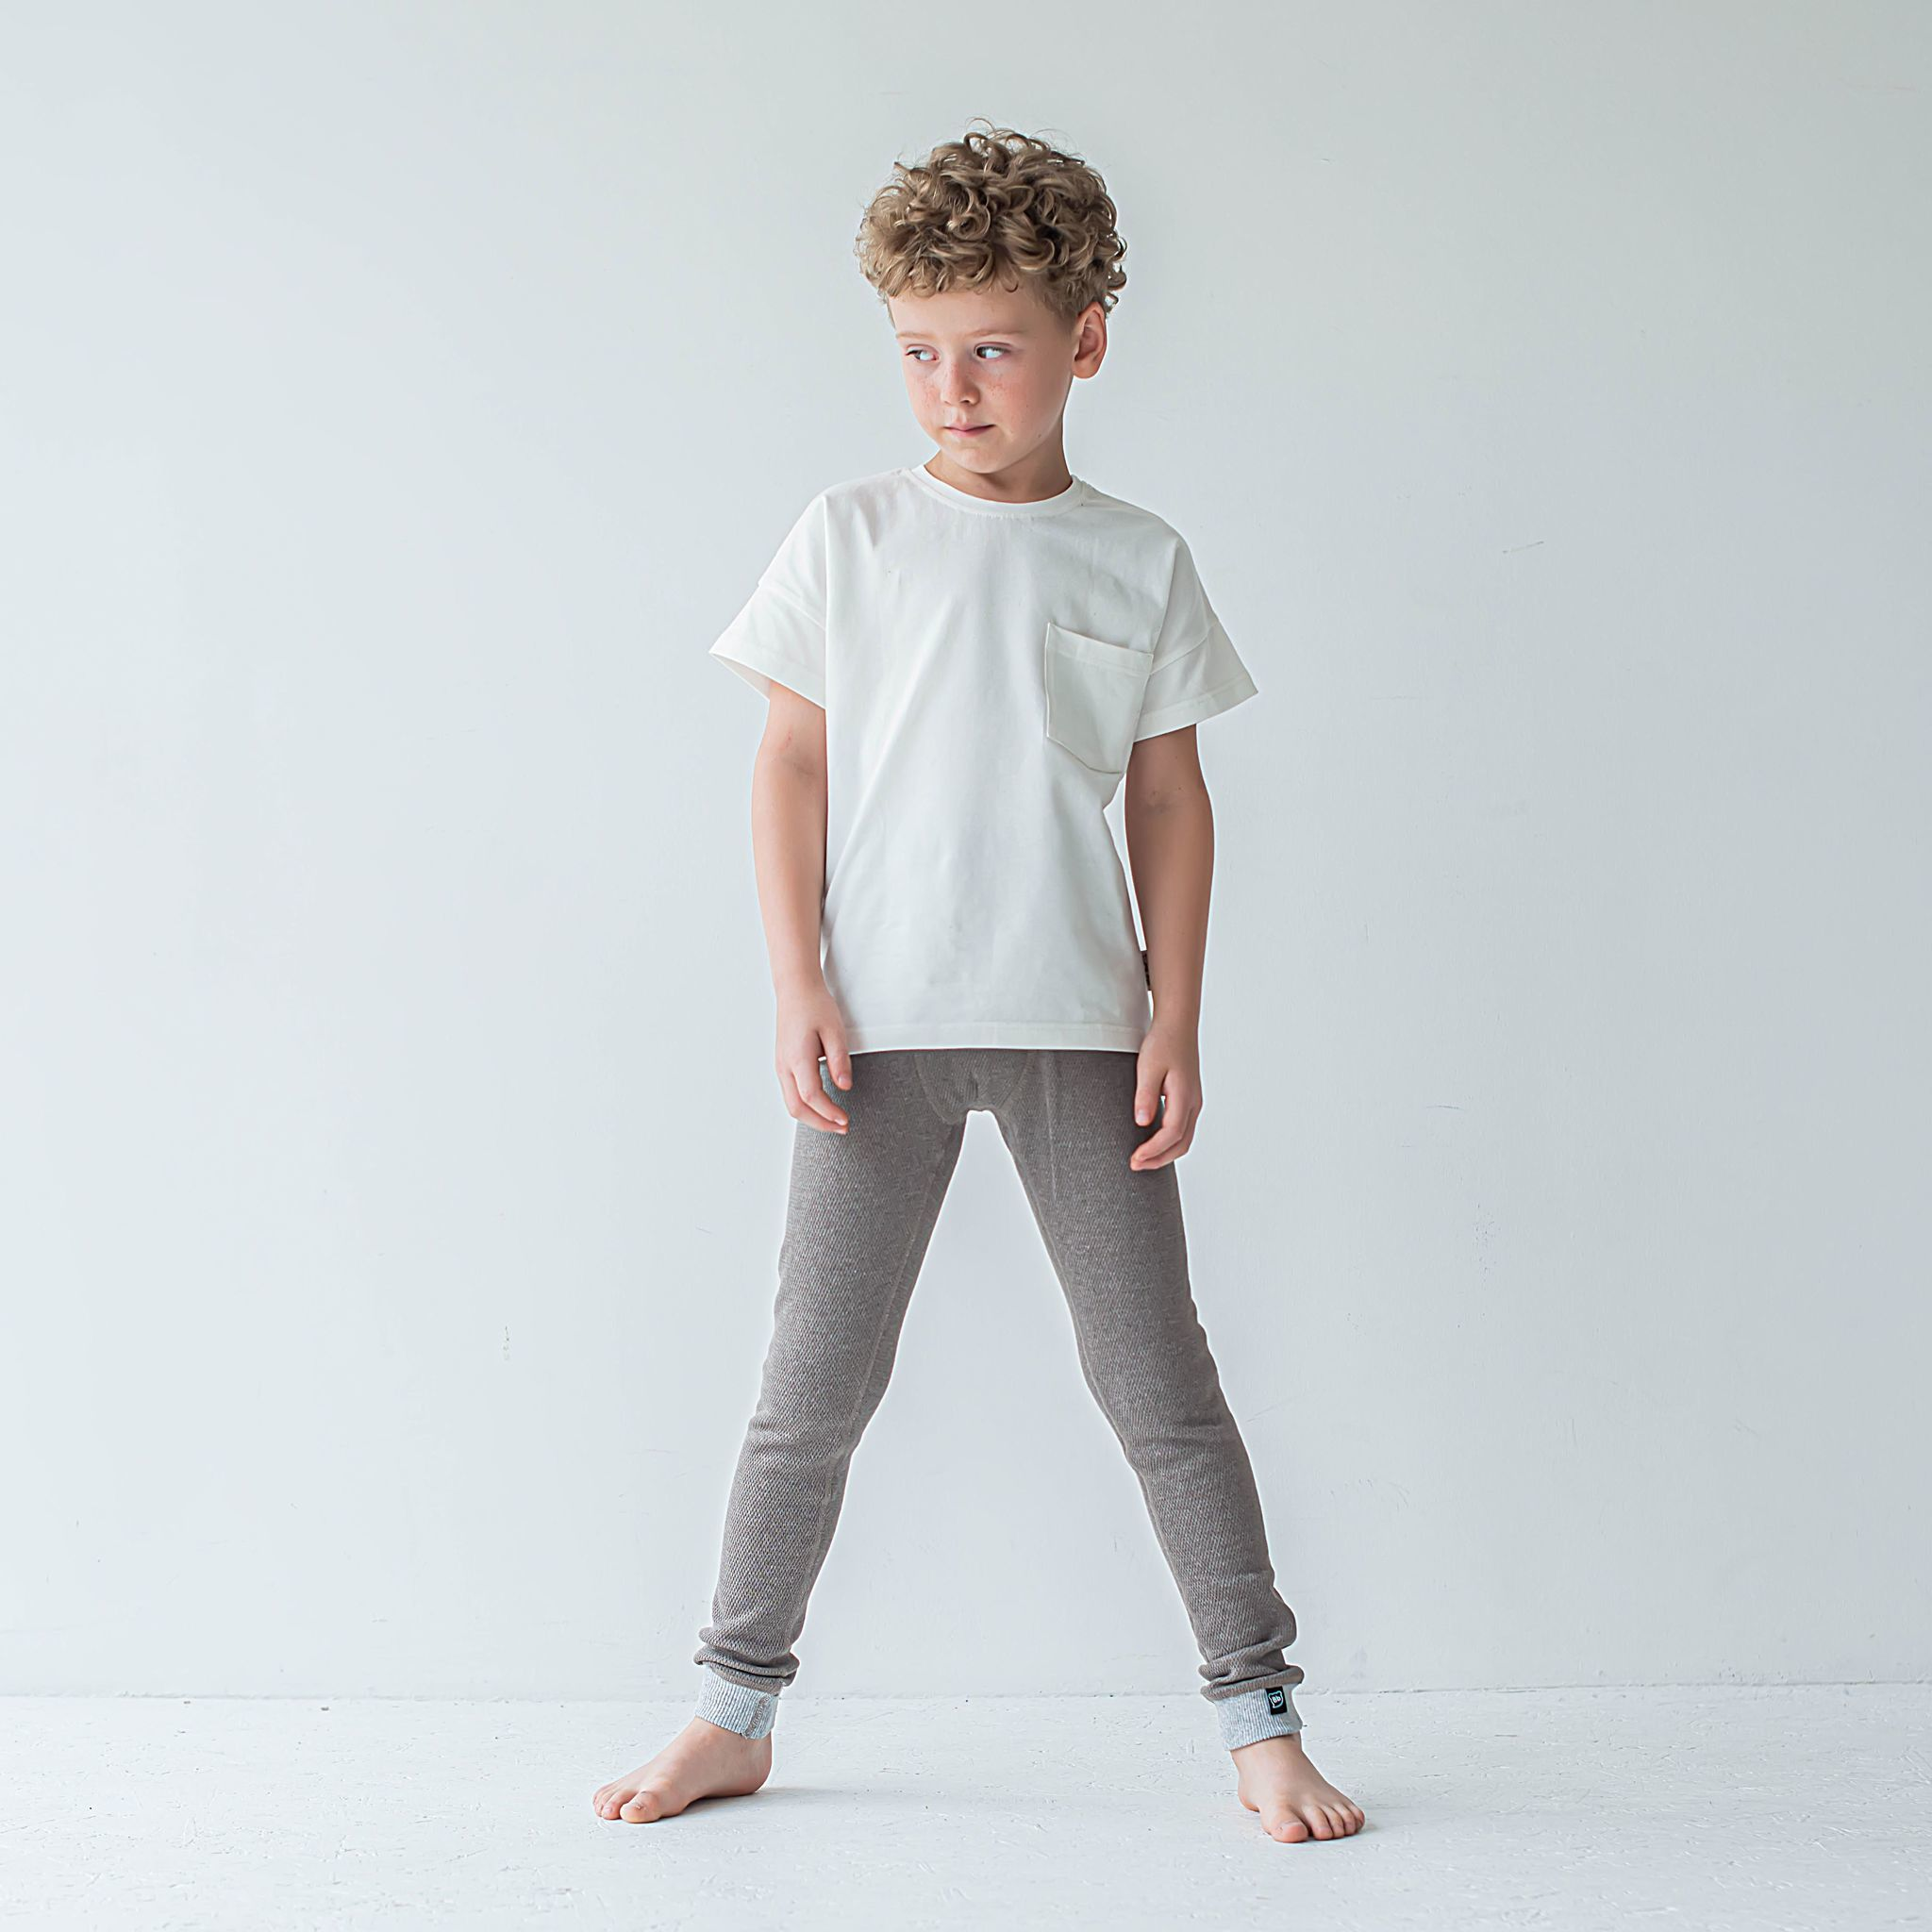 Thermal leggings for teens - Cocoa